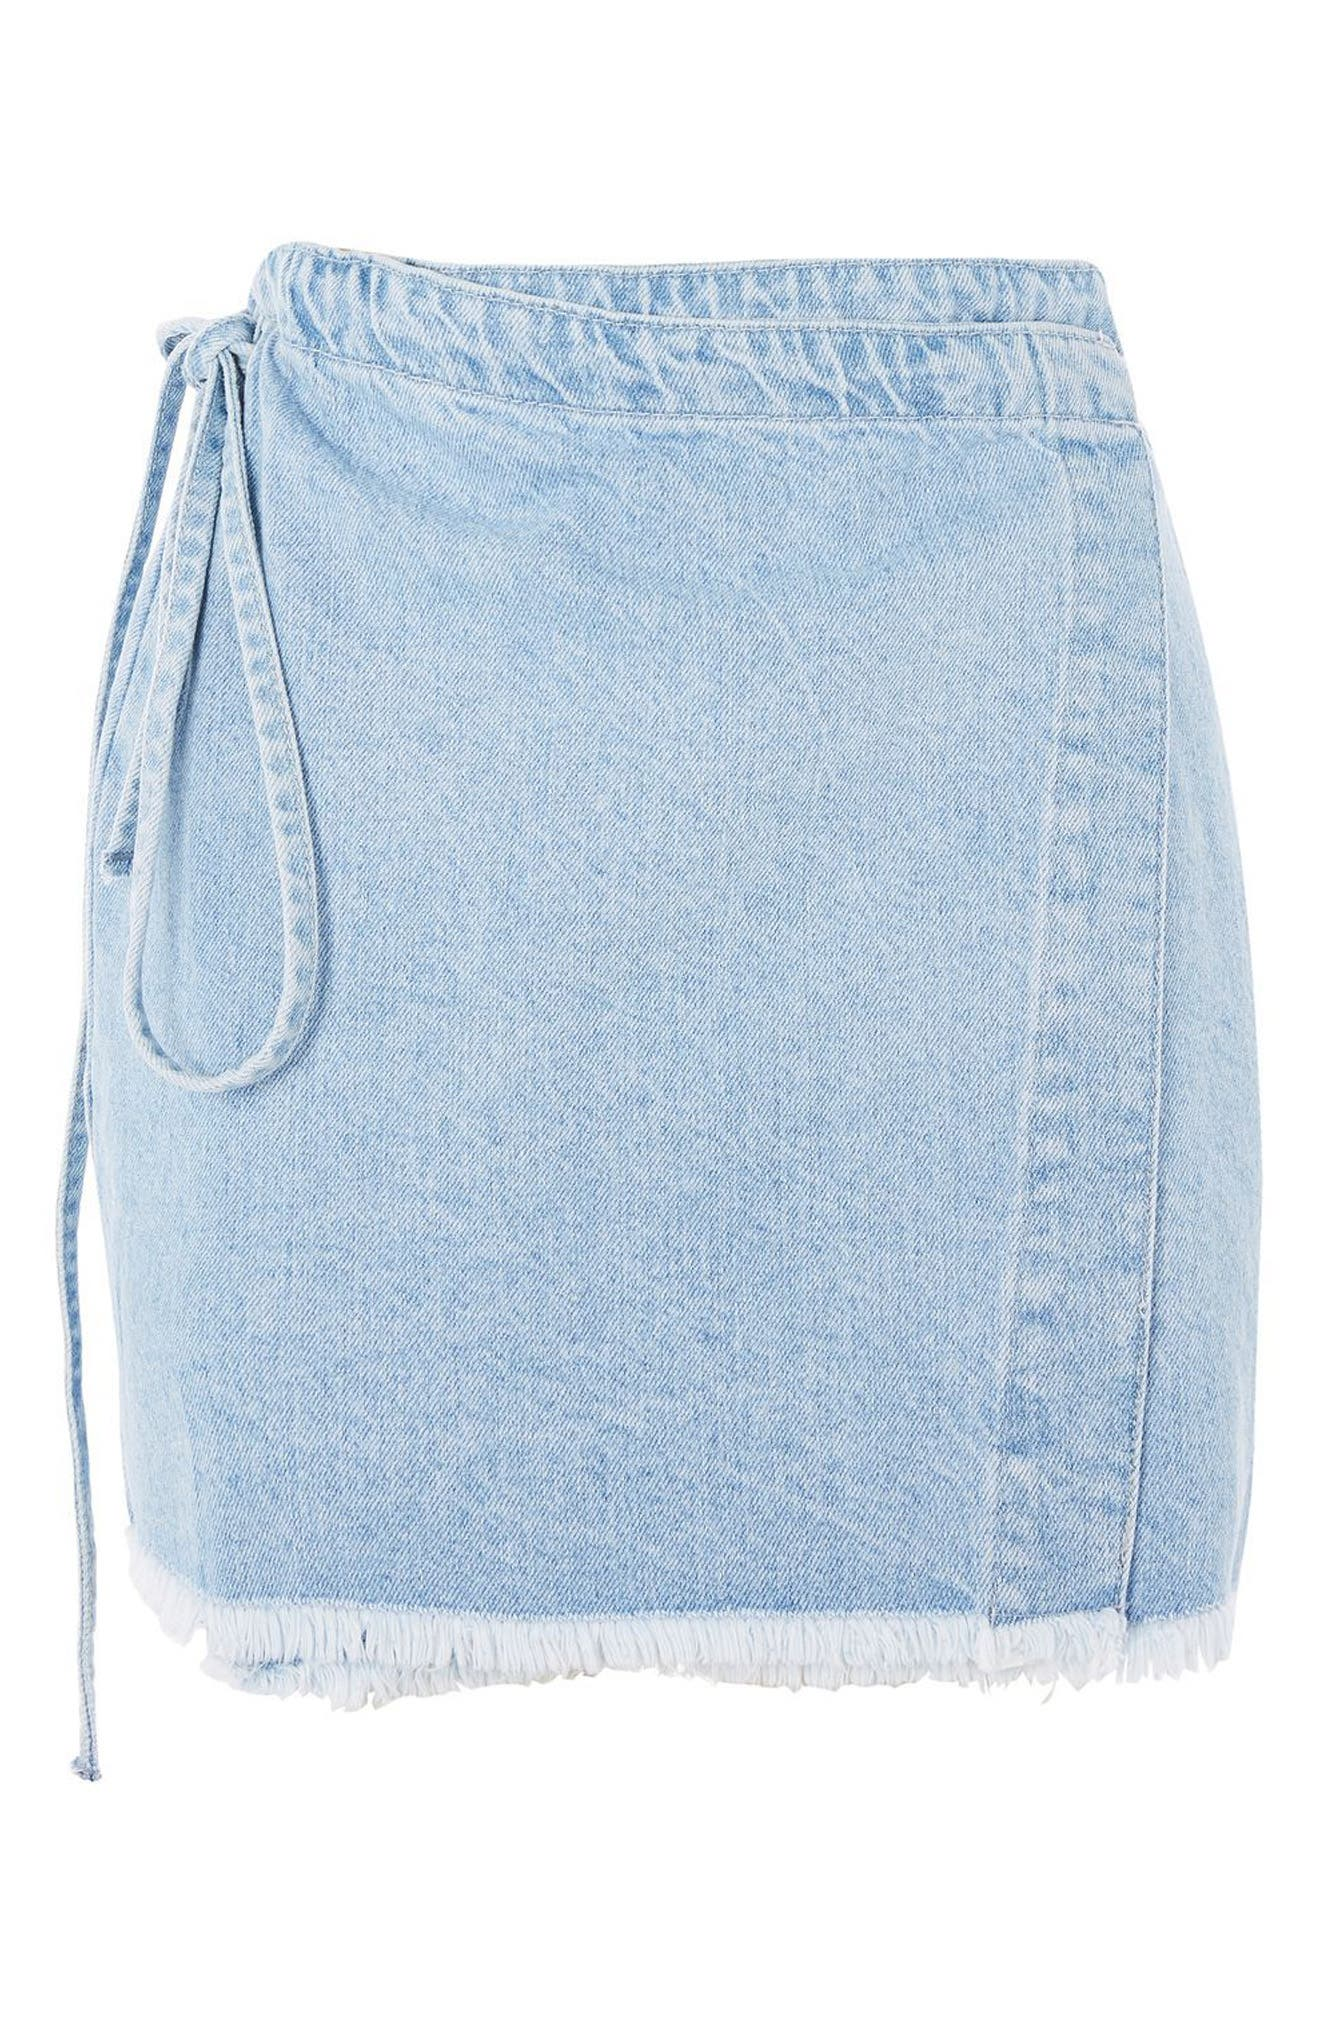 Tie Wrap Denim Skirt,                             Alternate thumbnail 3, color,                             420